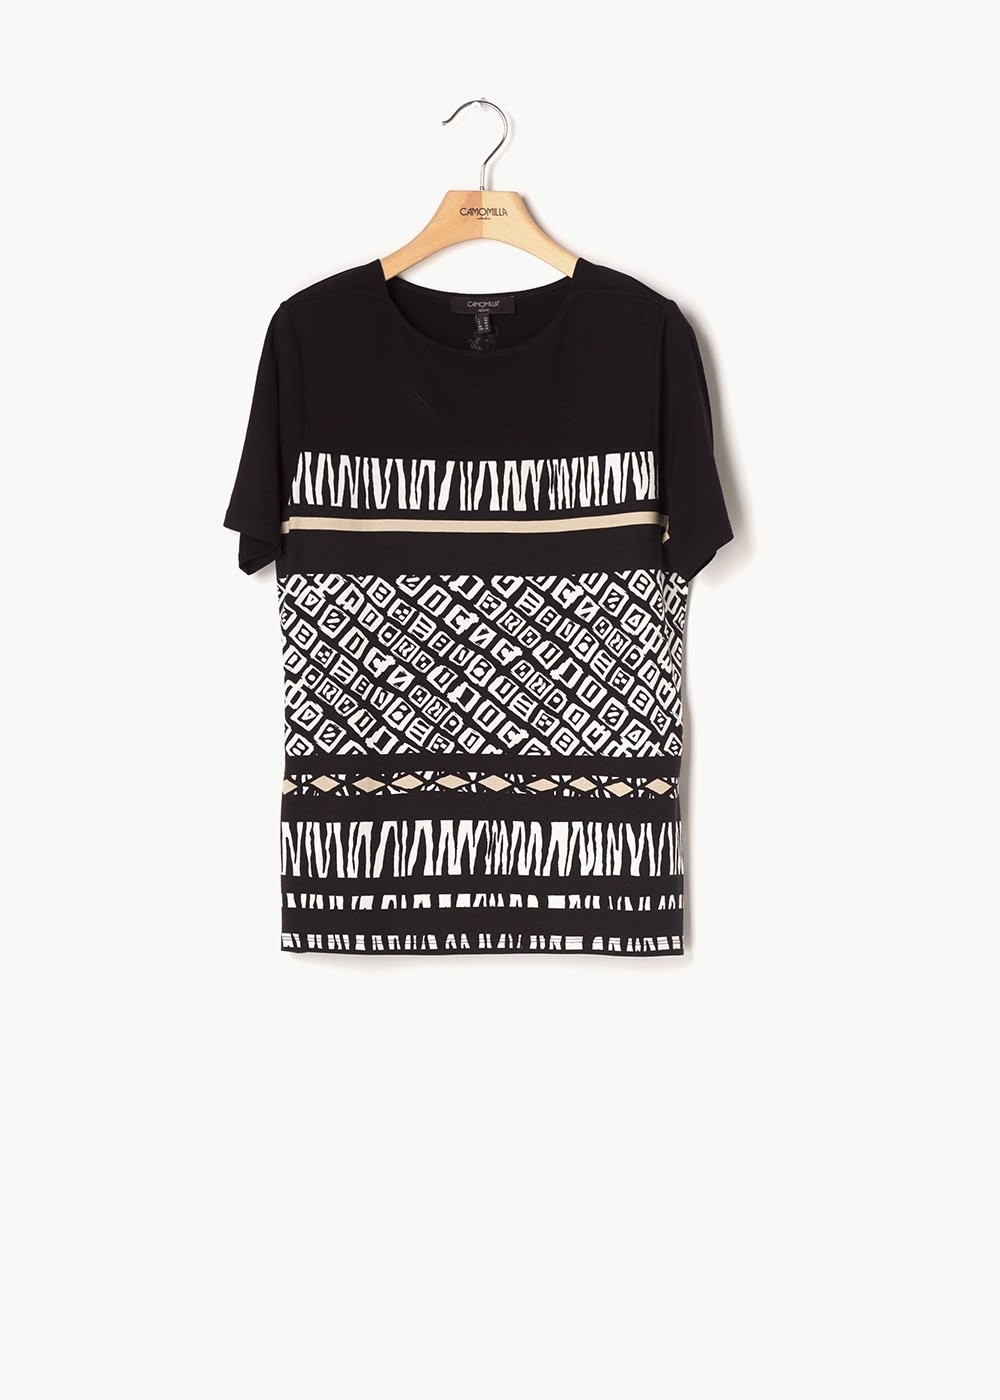 Sefora T-shirt with ethnic pattern - Black / Beige / Fantasia - Woman